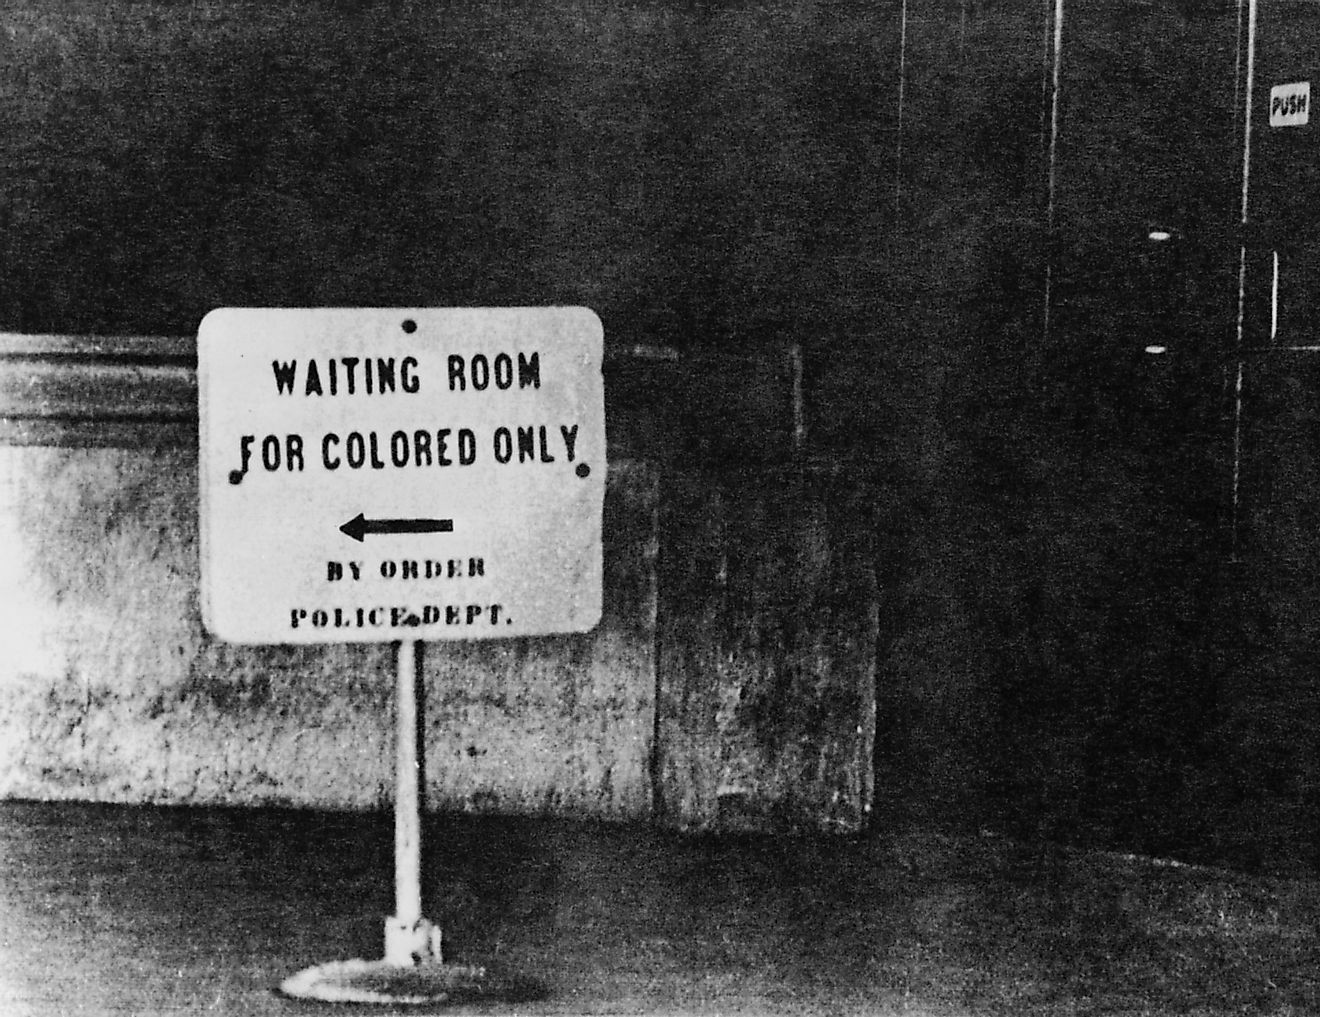 Jim Crow laws legalized racial segregation in the South after they were approved in the late 19th and early 20th centuries. Image credit: Everett Collection / Shutterstock.com